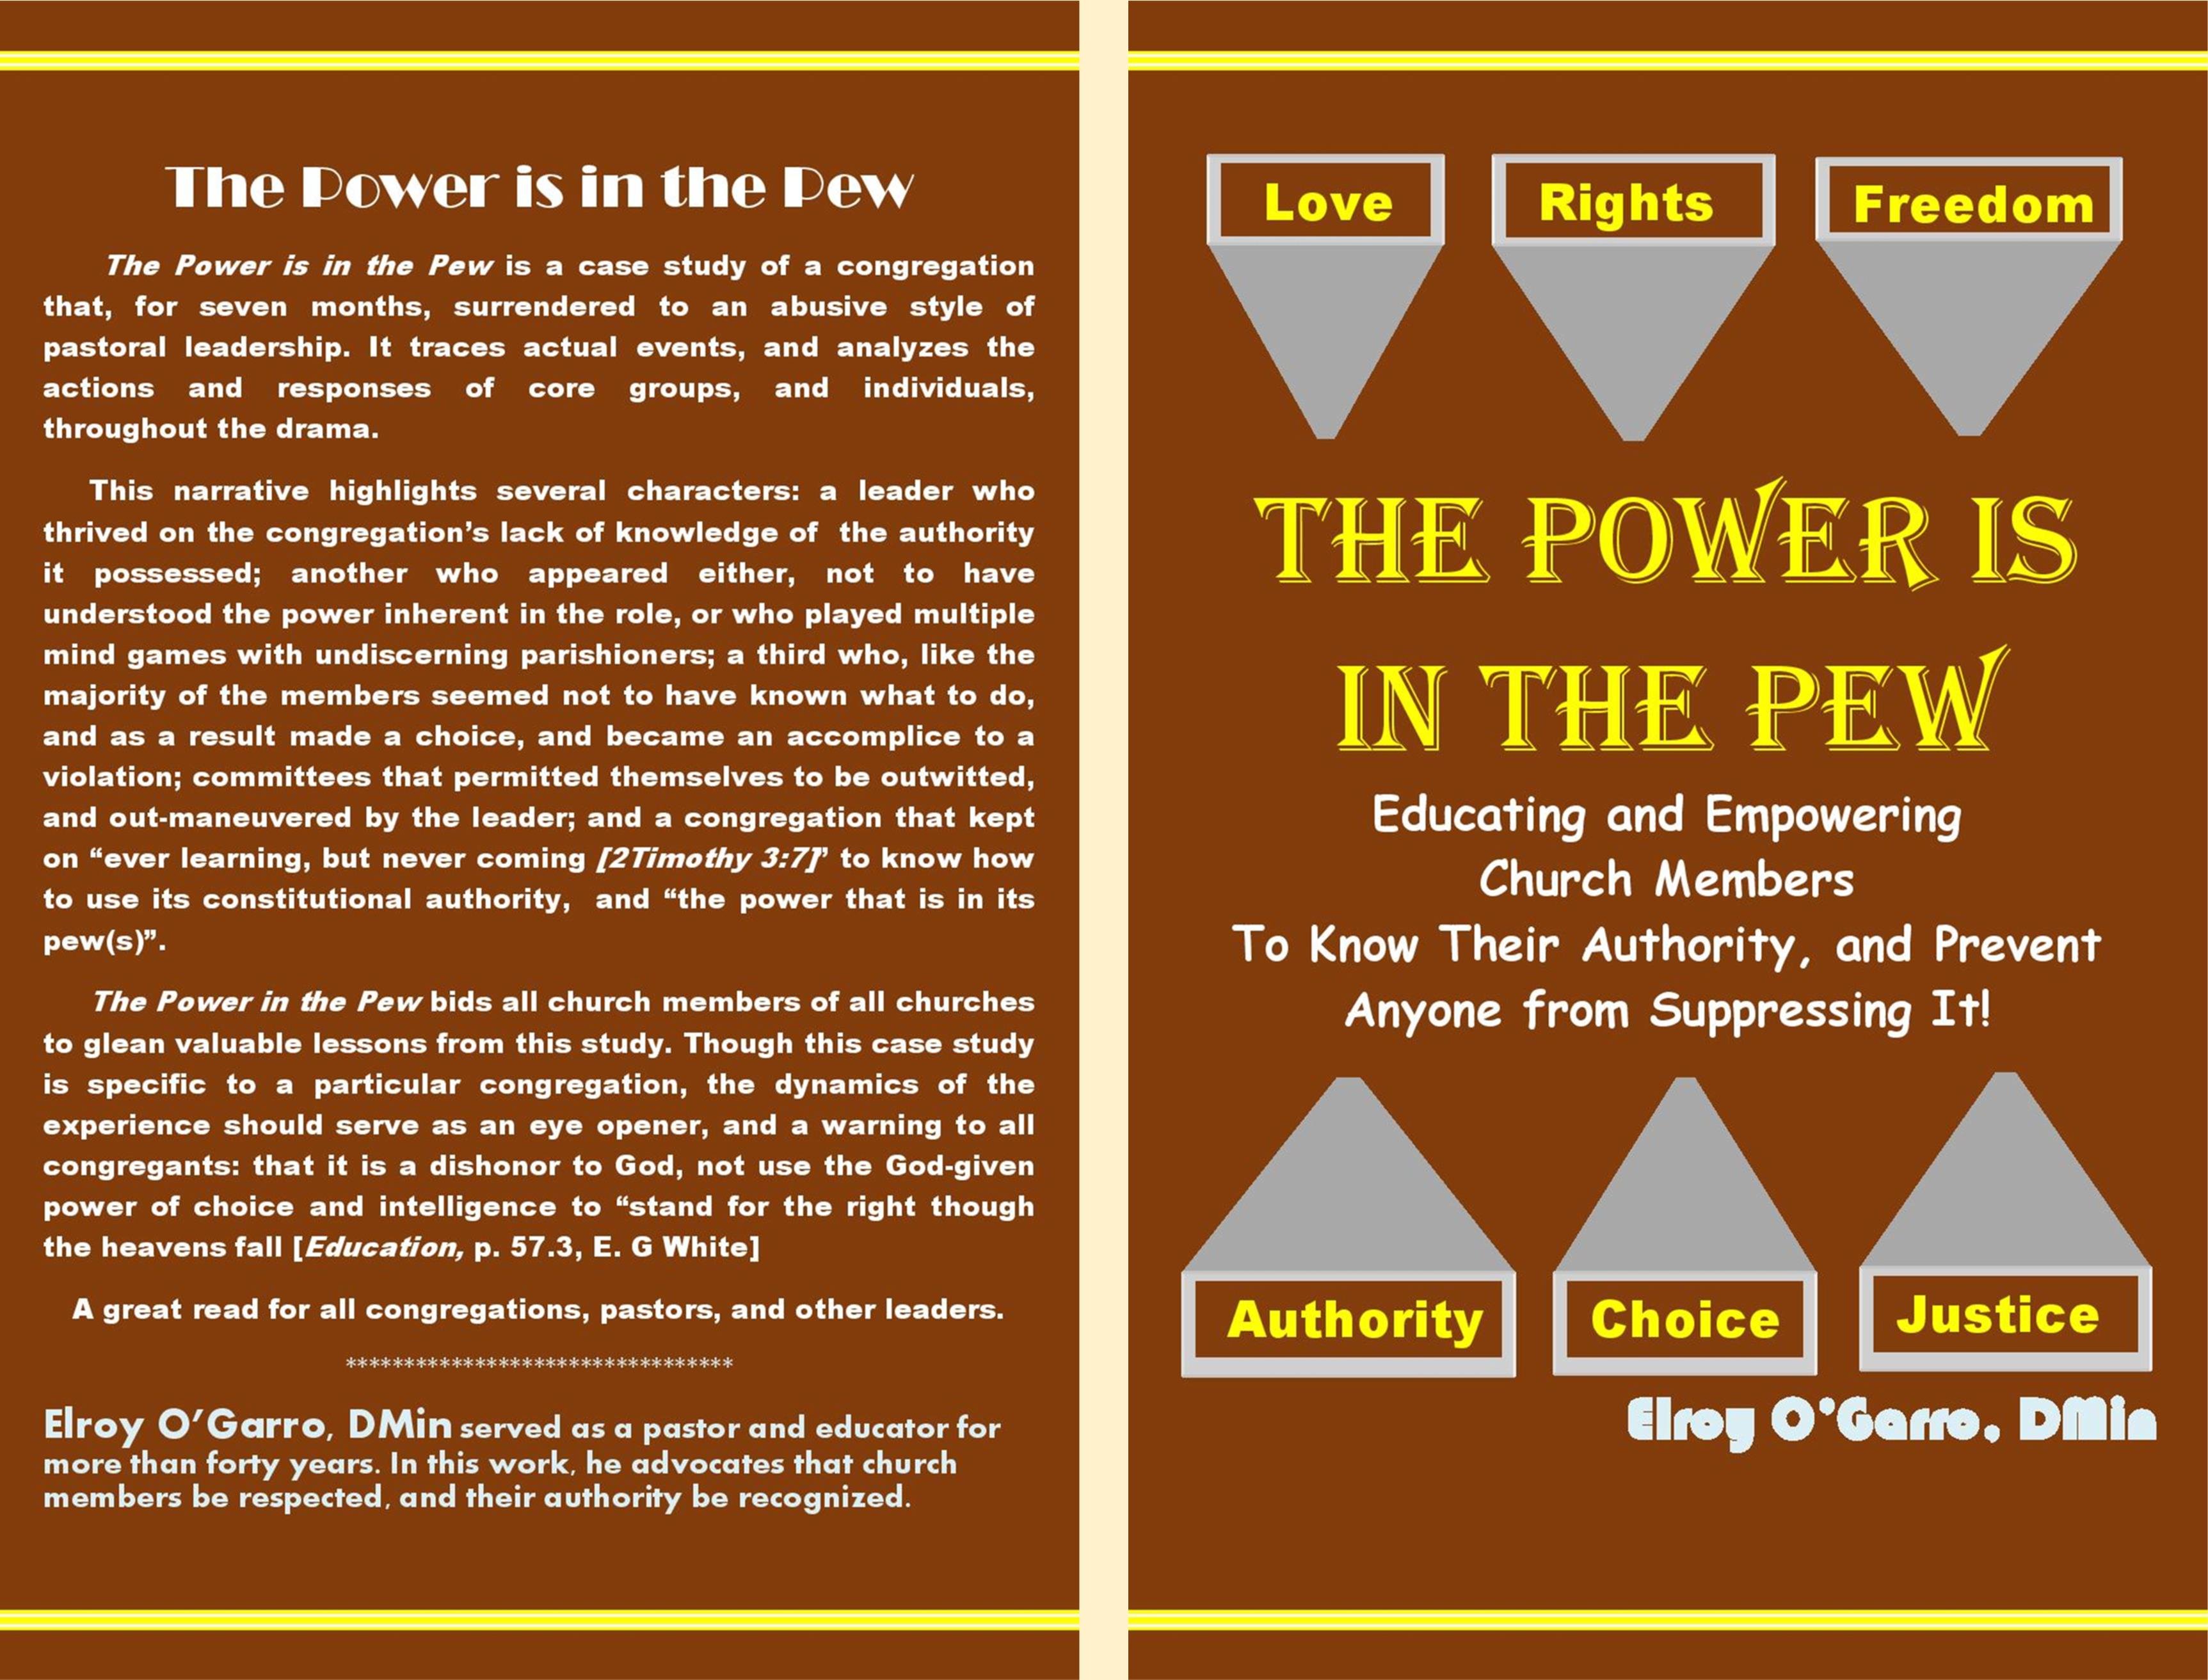 THE POWER IS IN THE PEW cover image